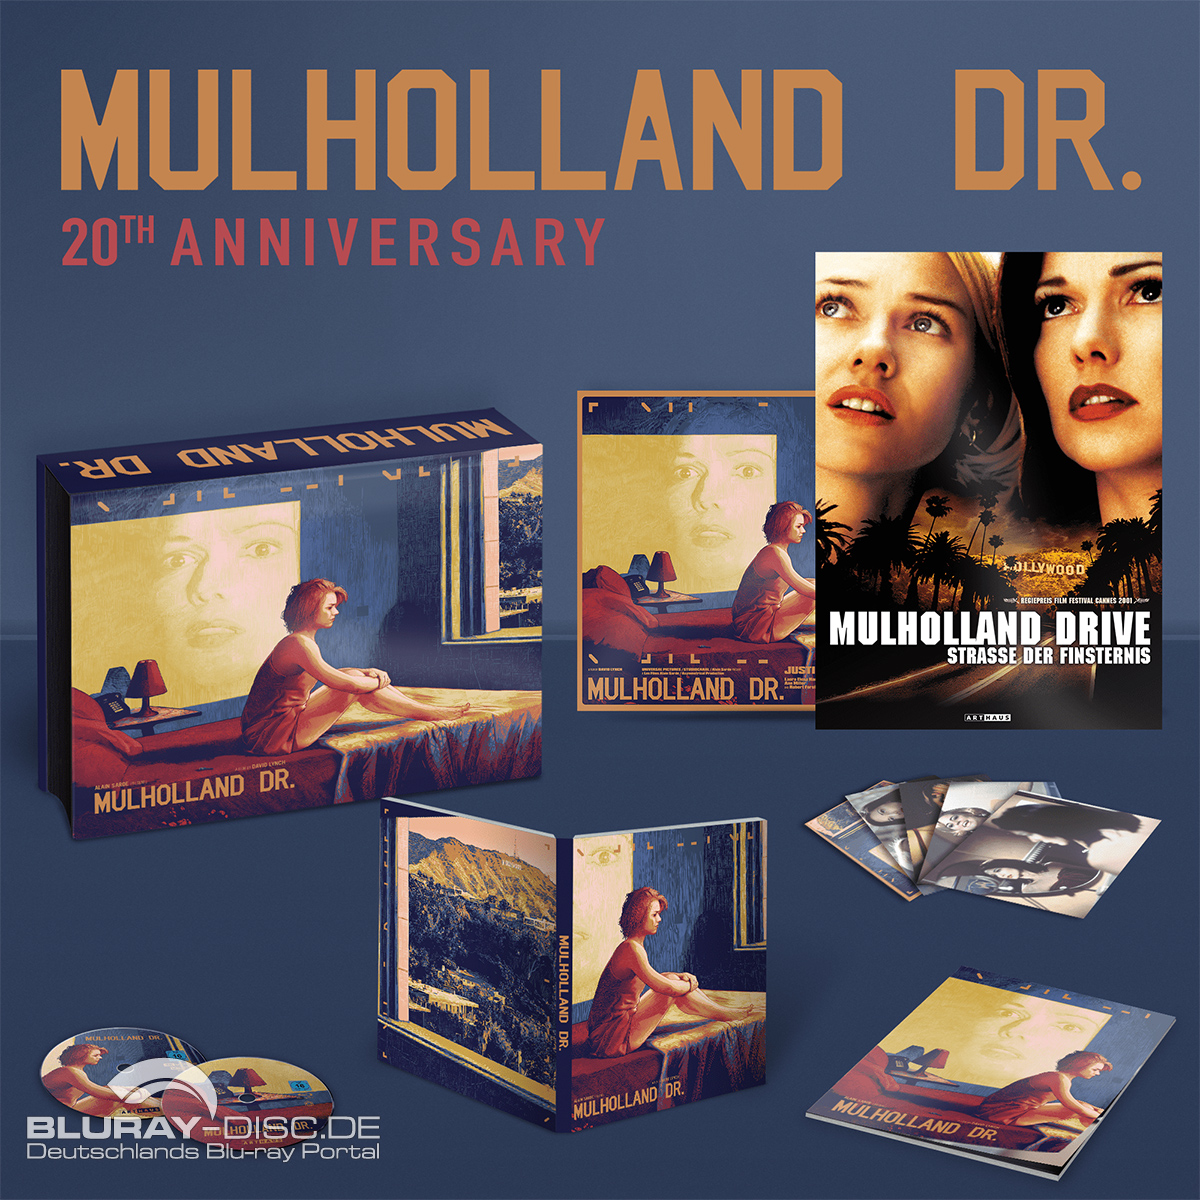 Mulholland_Drive_Galerie_Limited_Collectors_Edition_01.jpg